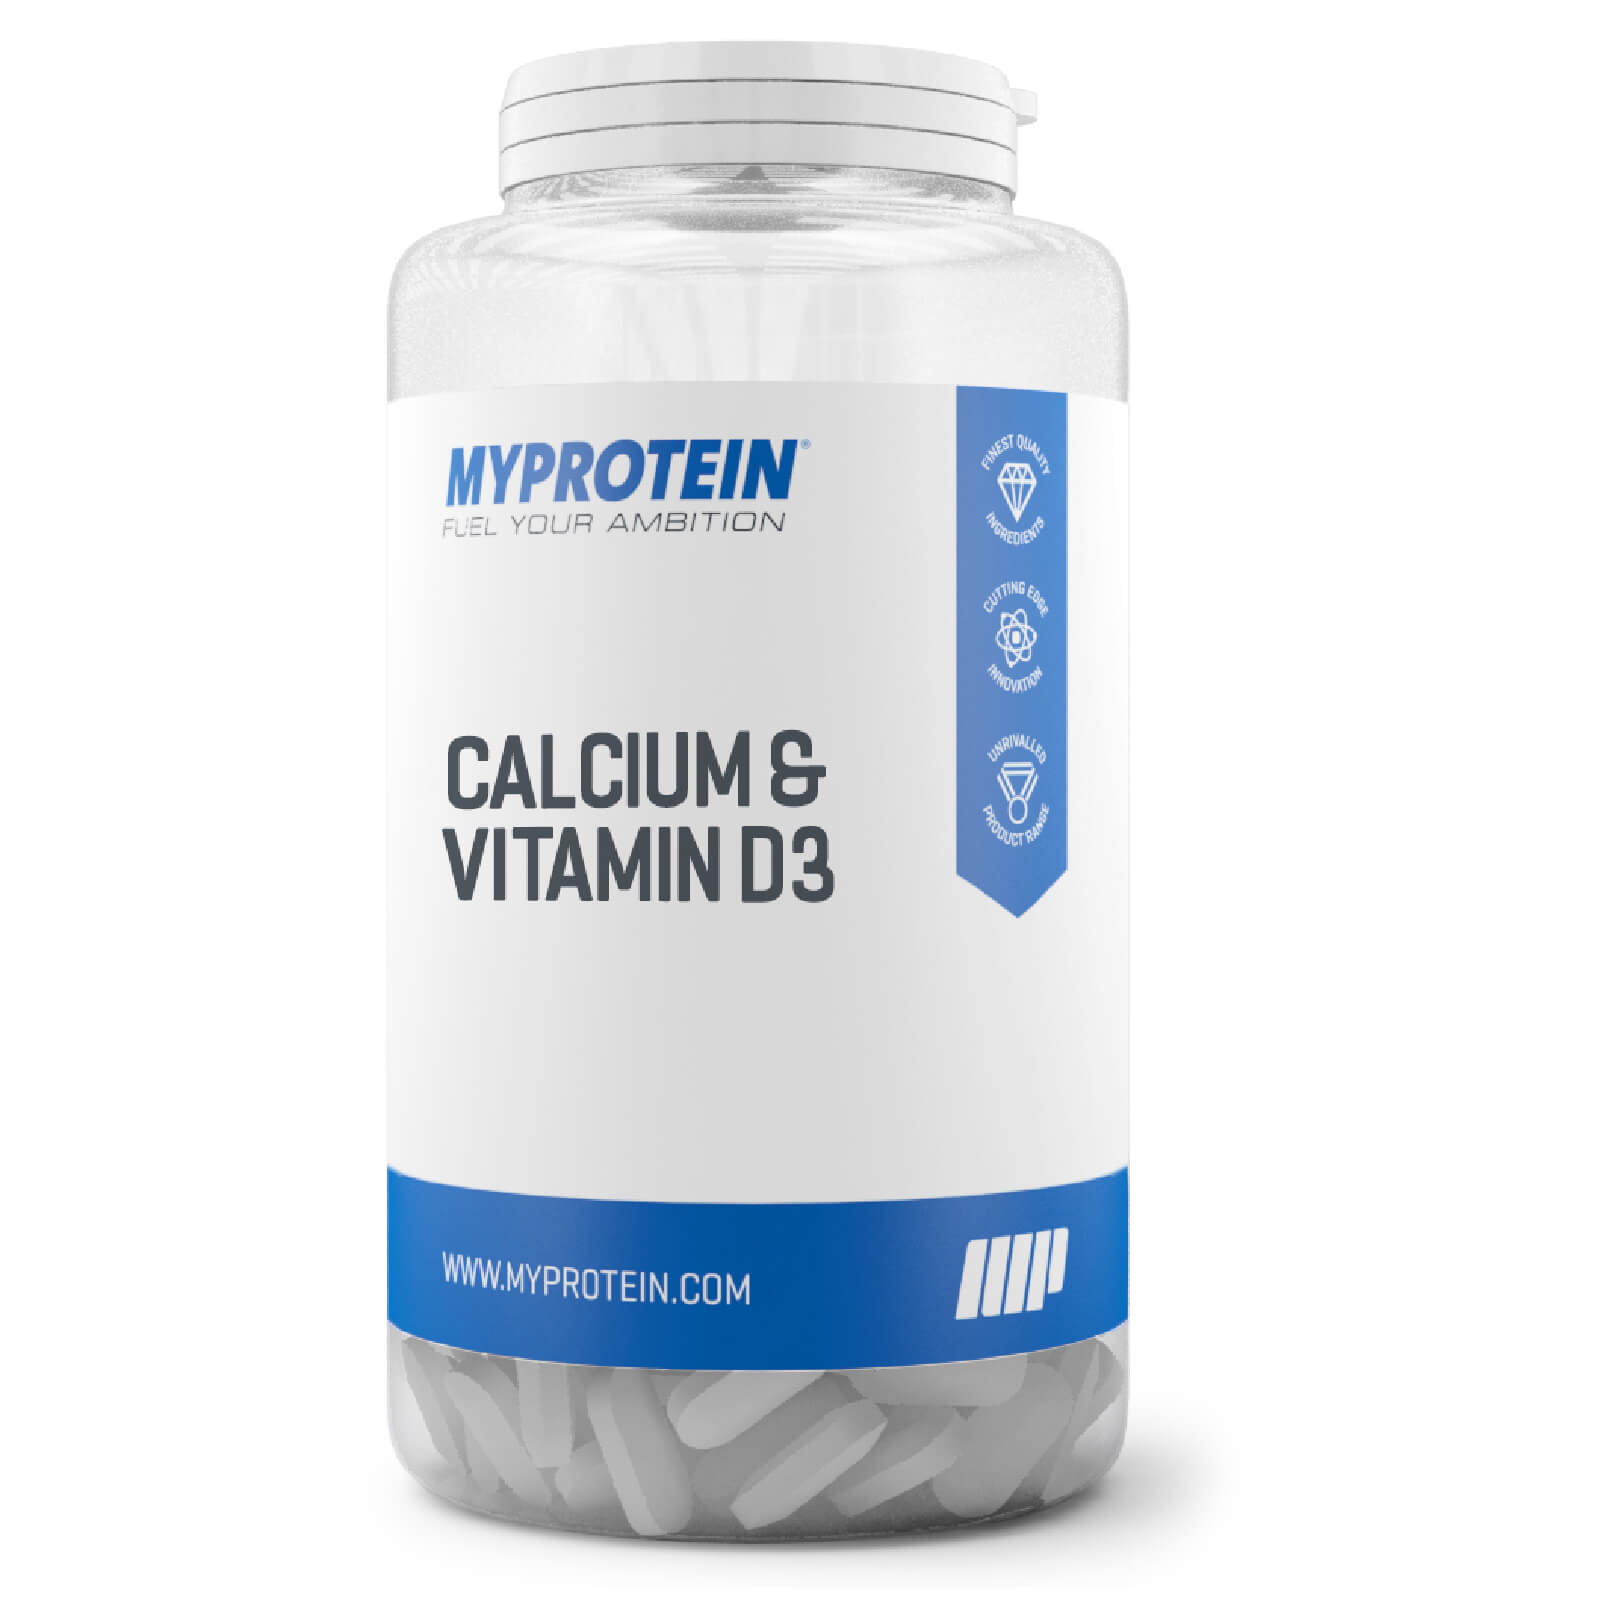 Calcium & Vitamin D3, 180 Tablets